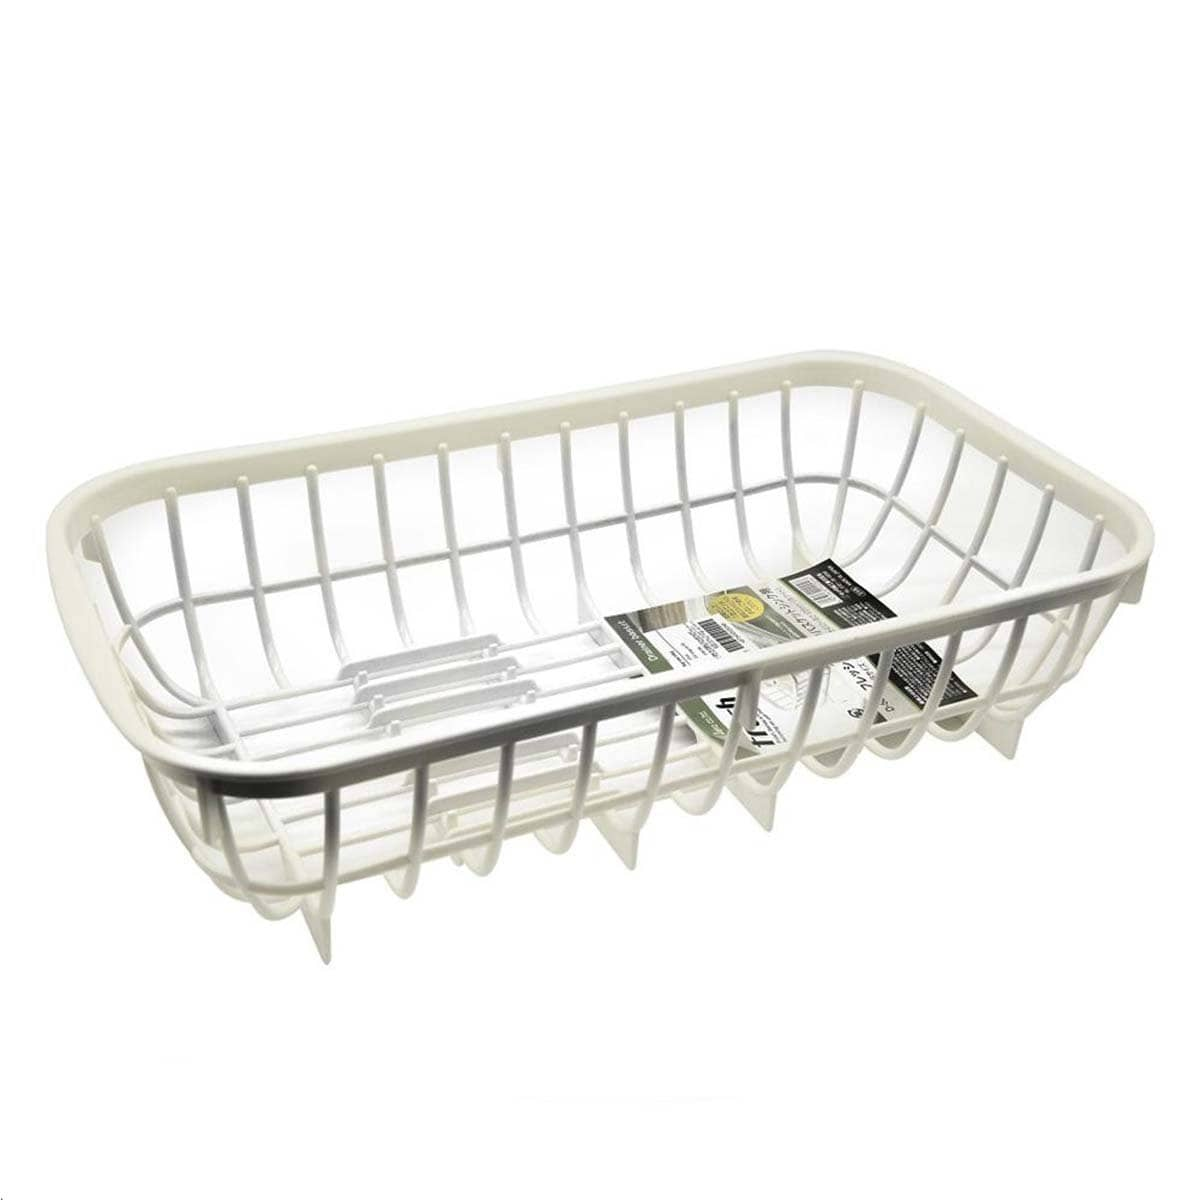 Japanese Plastic Dished Organizer Drain Basket For Sink White